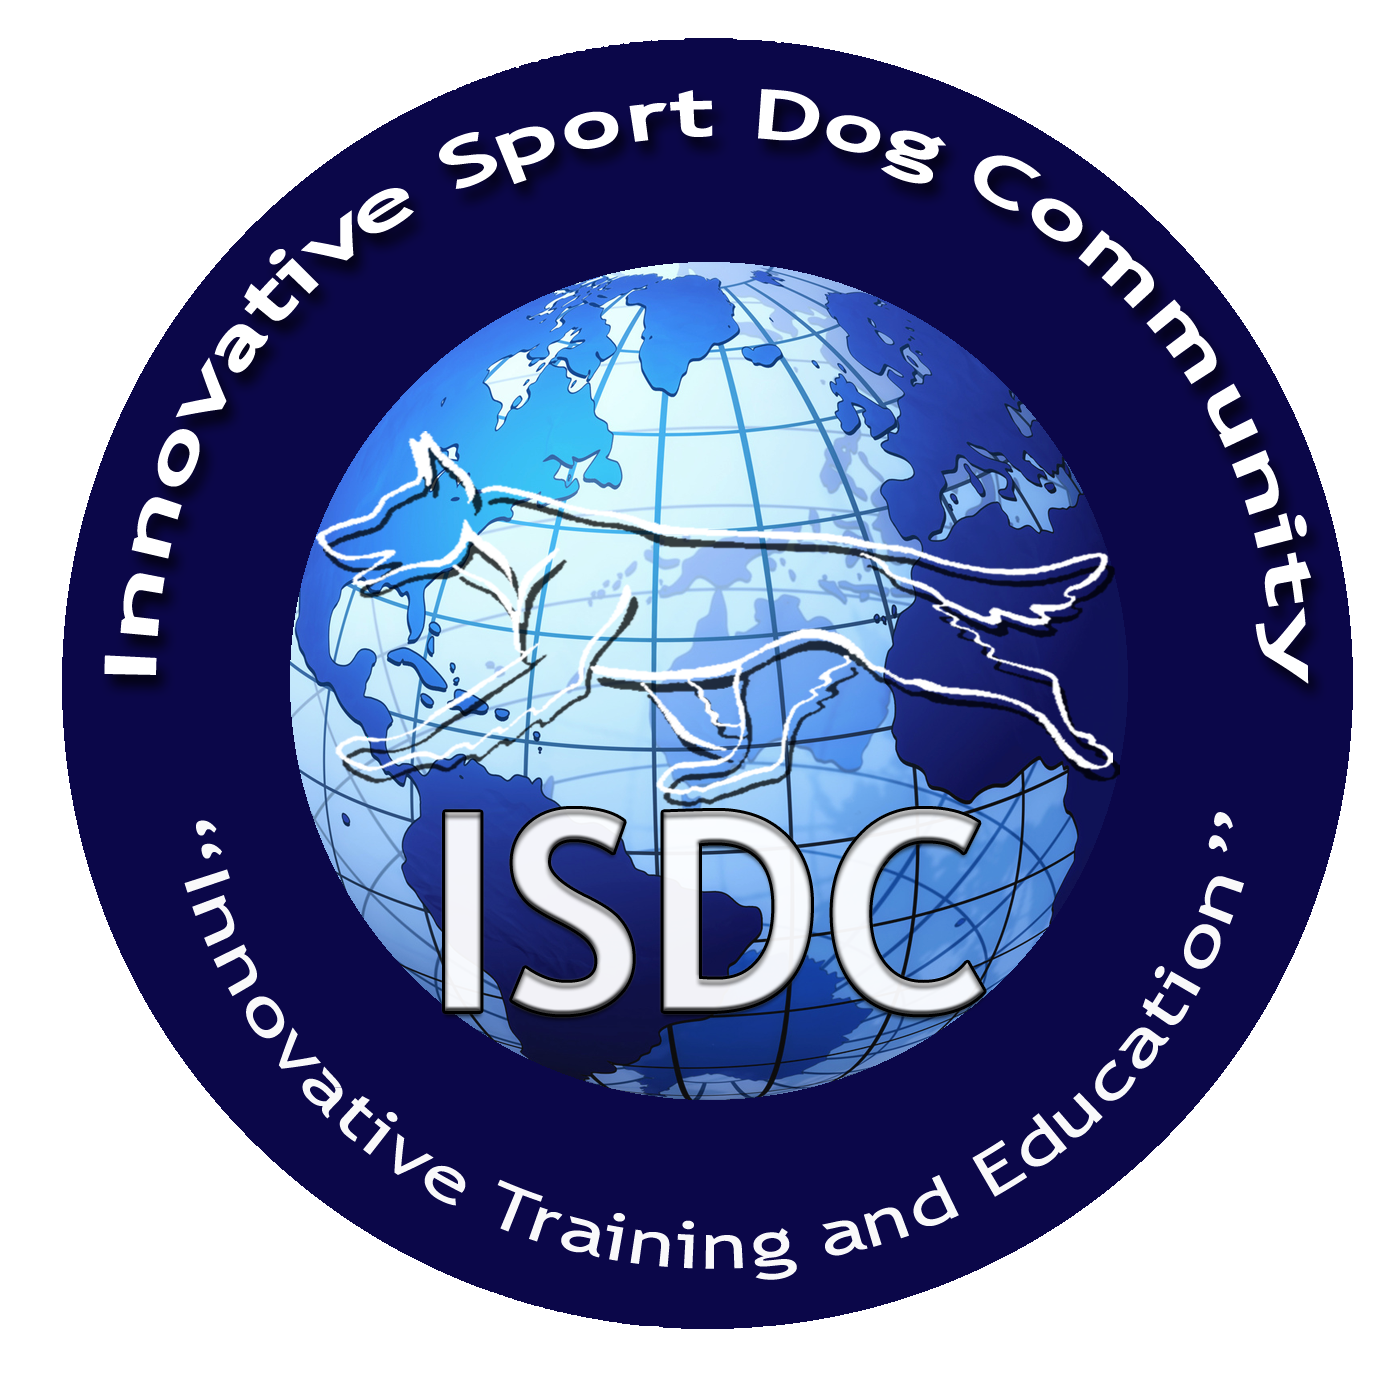 Innovative Sport Dog Community